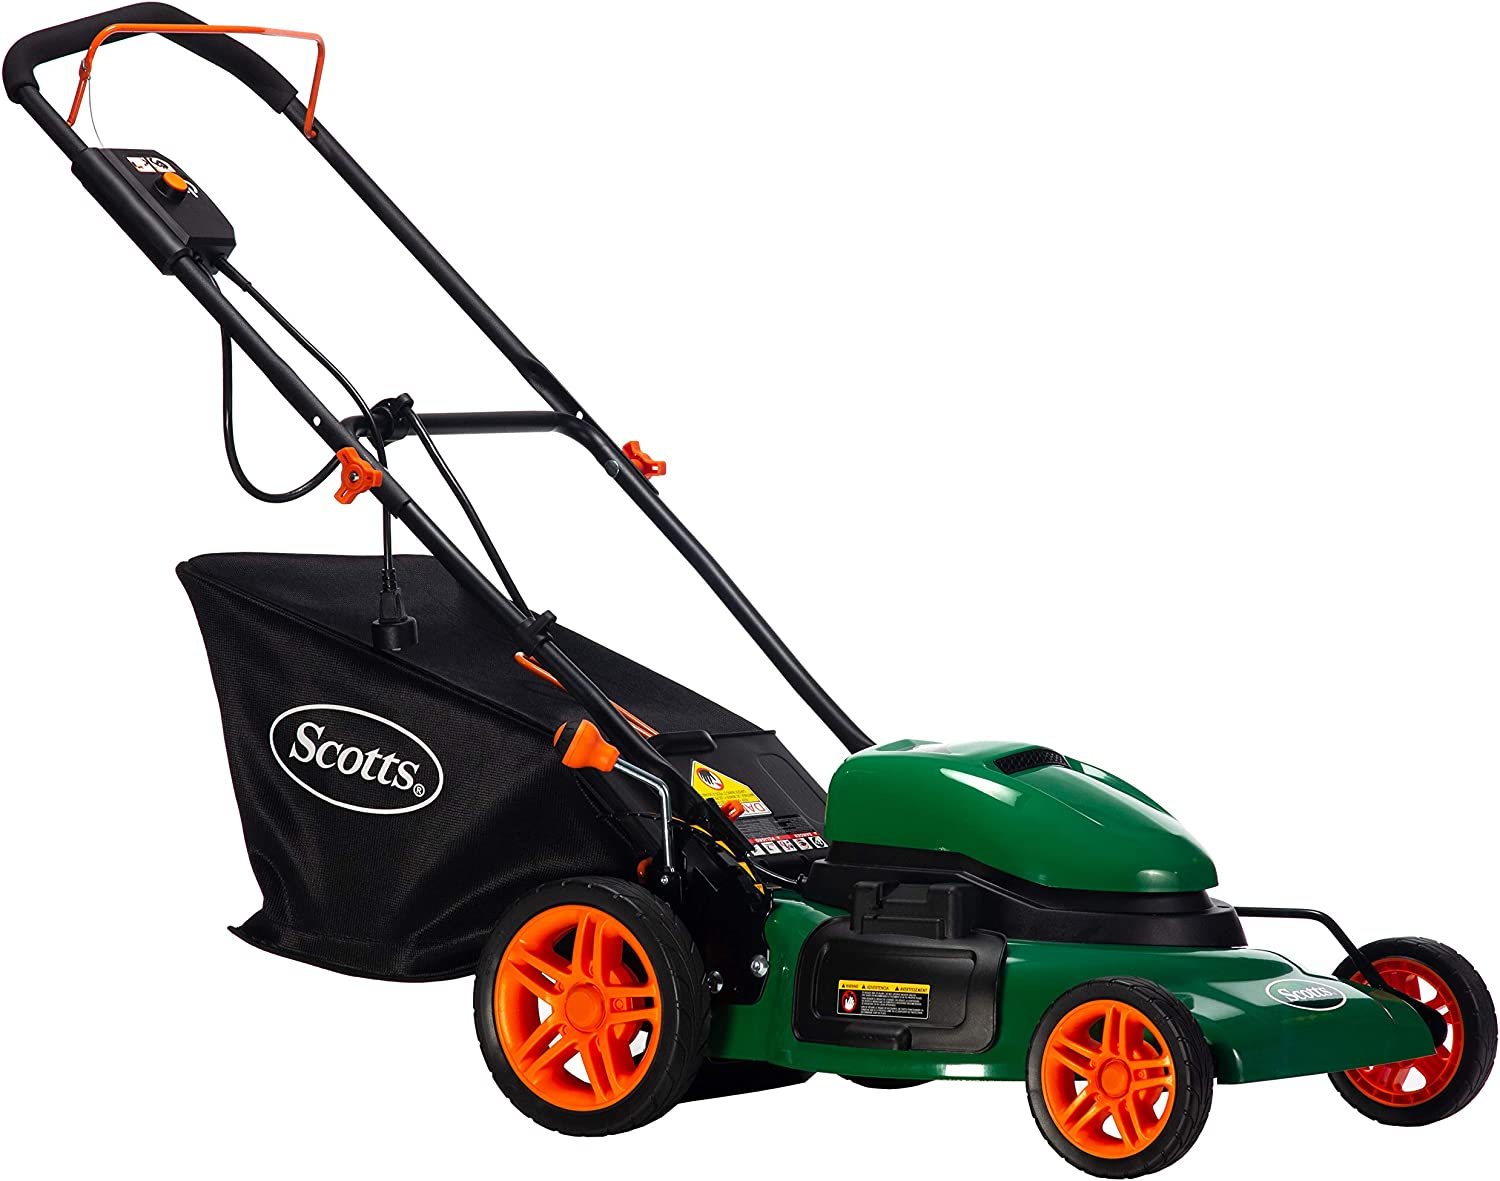 Scotts Corded Electric Lawn Mower